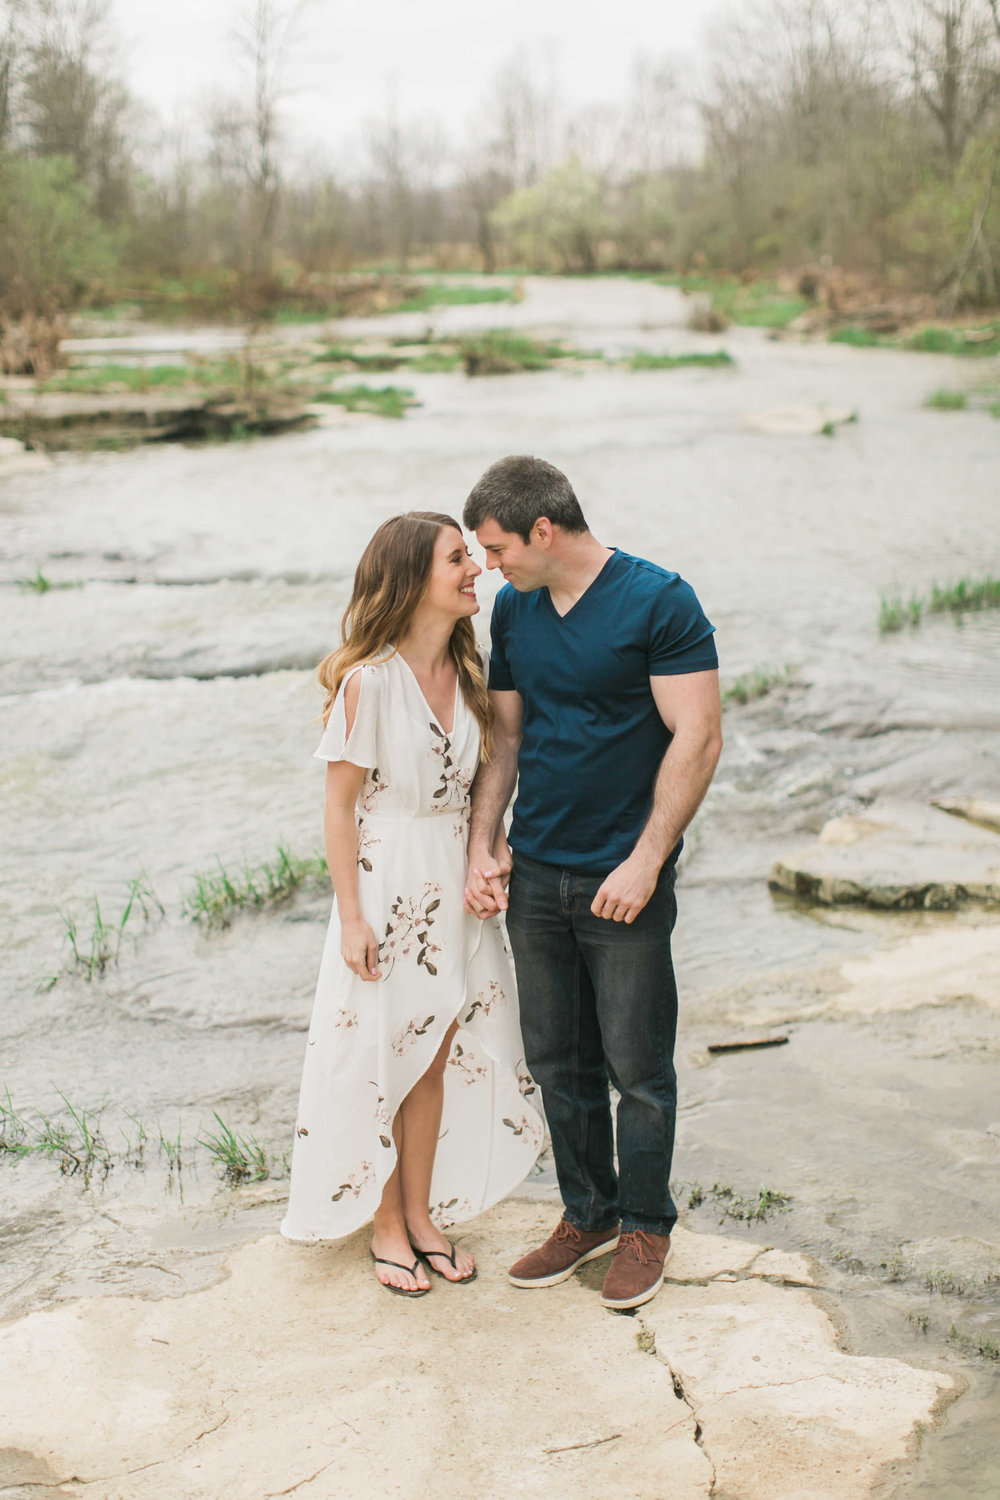 Holly___Ian___Engagement_Session___Daniel_Ricci_Wedding_Photography_26.jpg